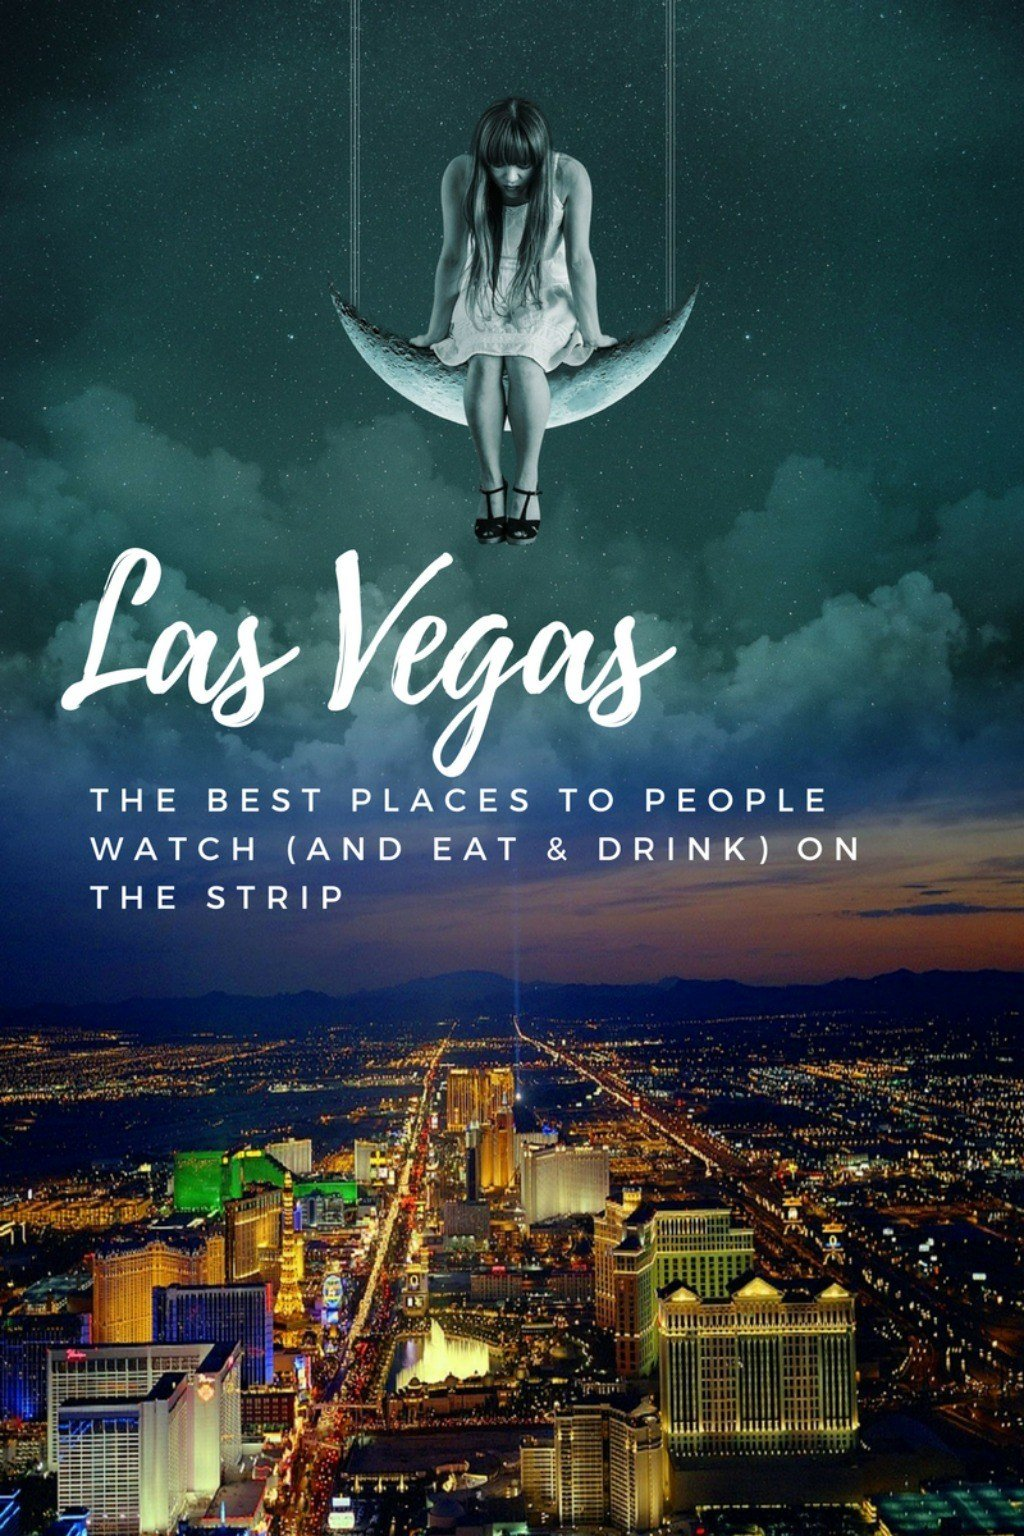 The Best Places to People Watch (and Eat & Drink) on the Las Vegas Strip